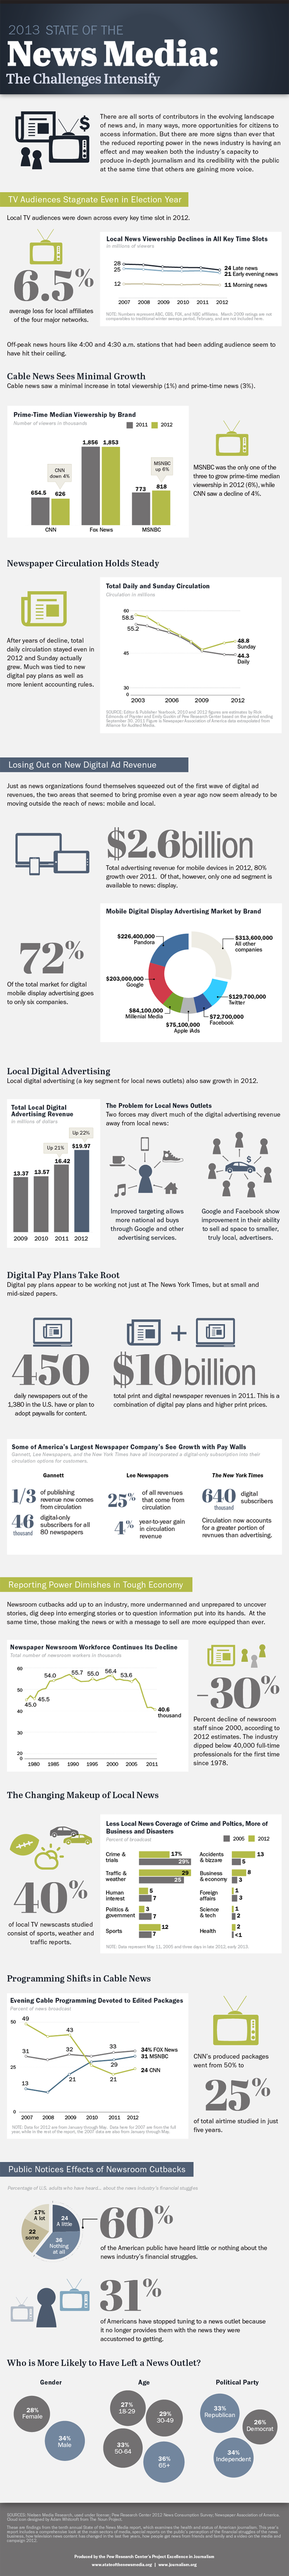 2013 State of the News Media Overview Infographic